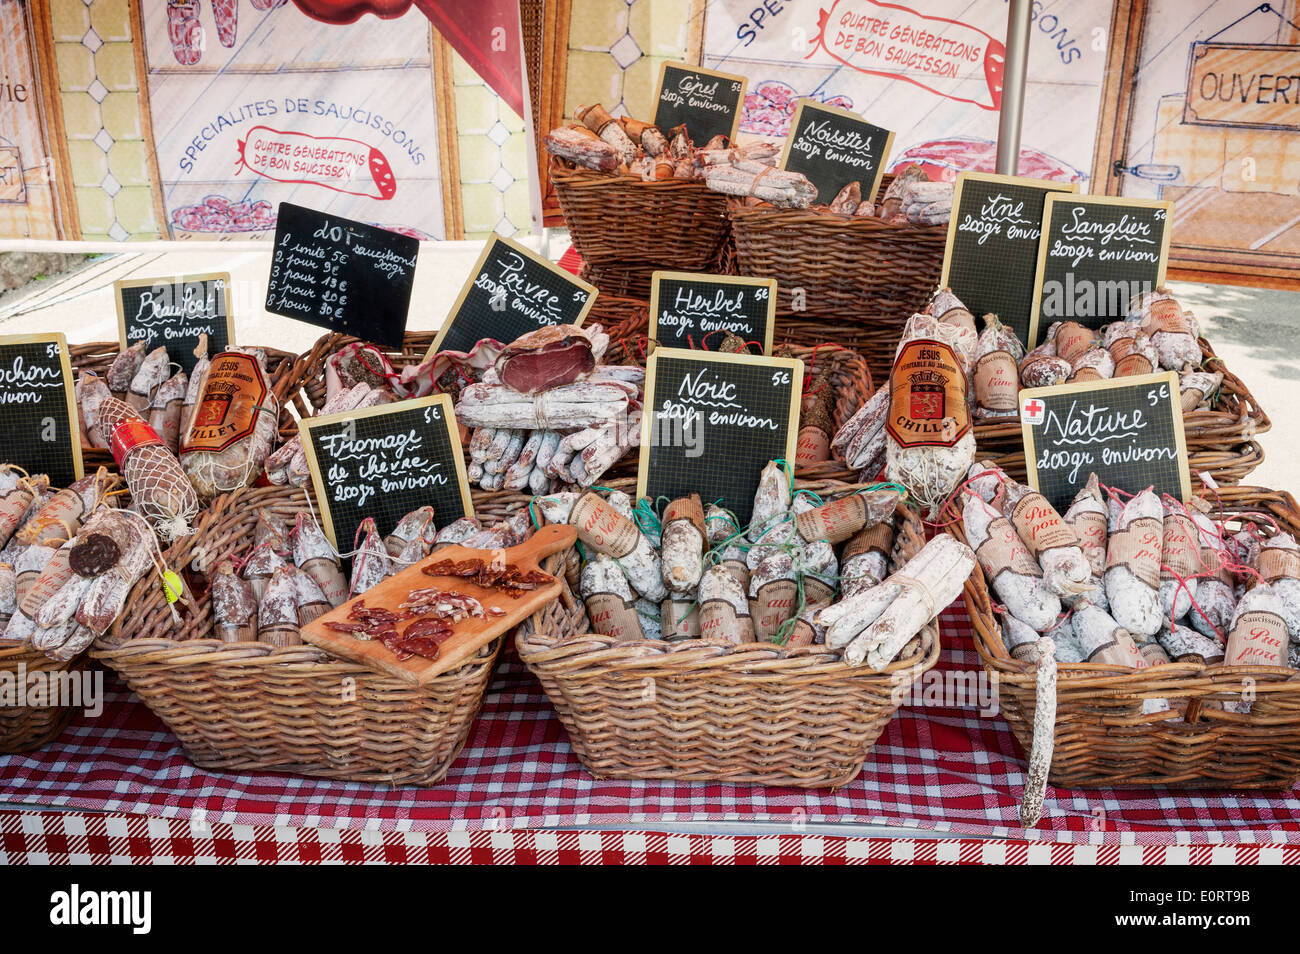 Salami sausage meat display on a market stall, Brittany, France, Europe - Stock Image